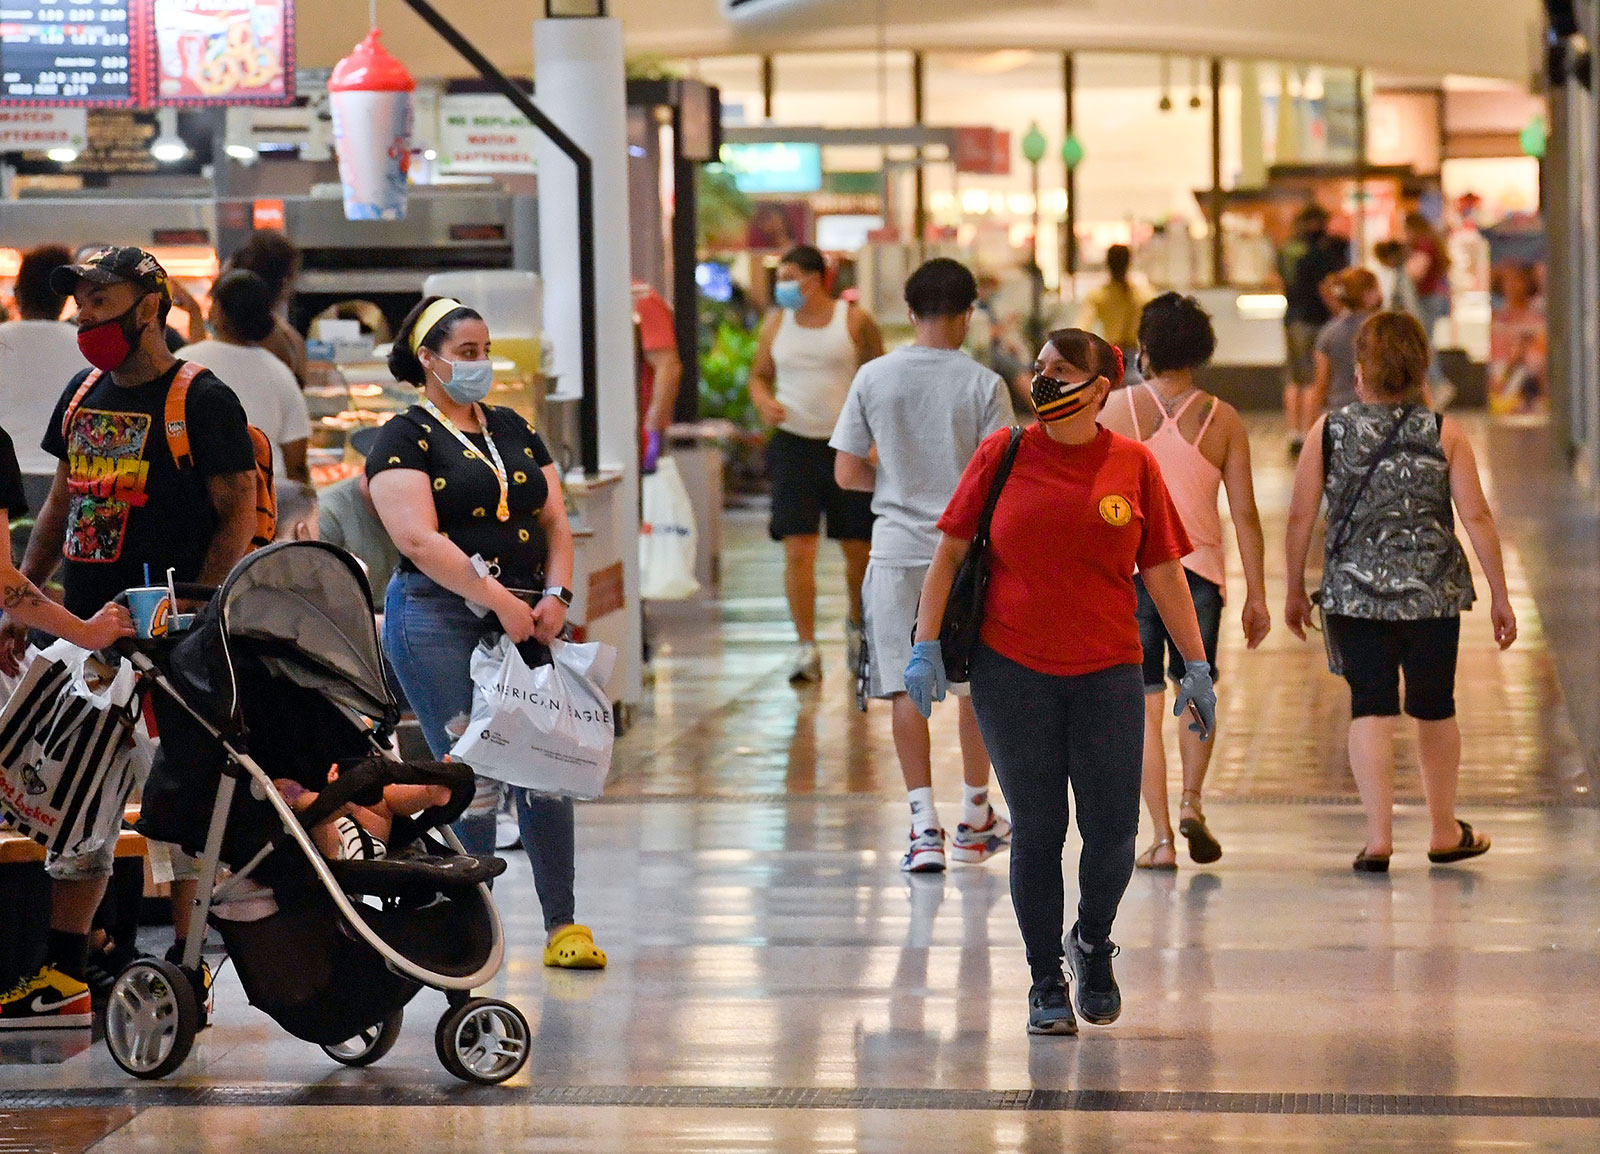 People wearing masks walk through the Berkshire Mall in Wyomissing, Pennsylvania, on June 26. Pennsylvania Gov. Tom Wolf announced a new order that requires masks to be worn whenever anyone leaves home.